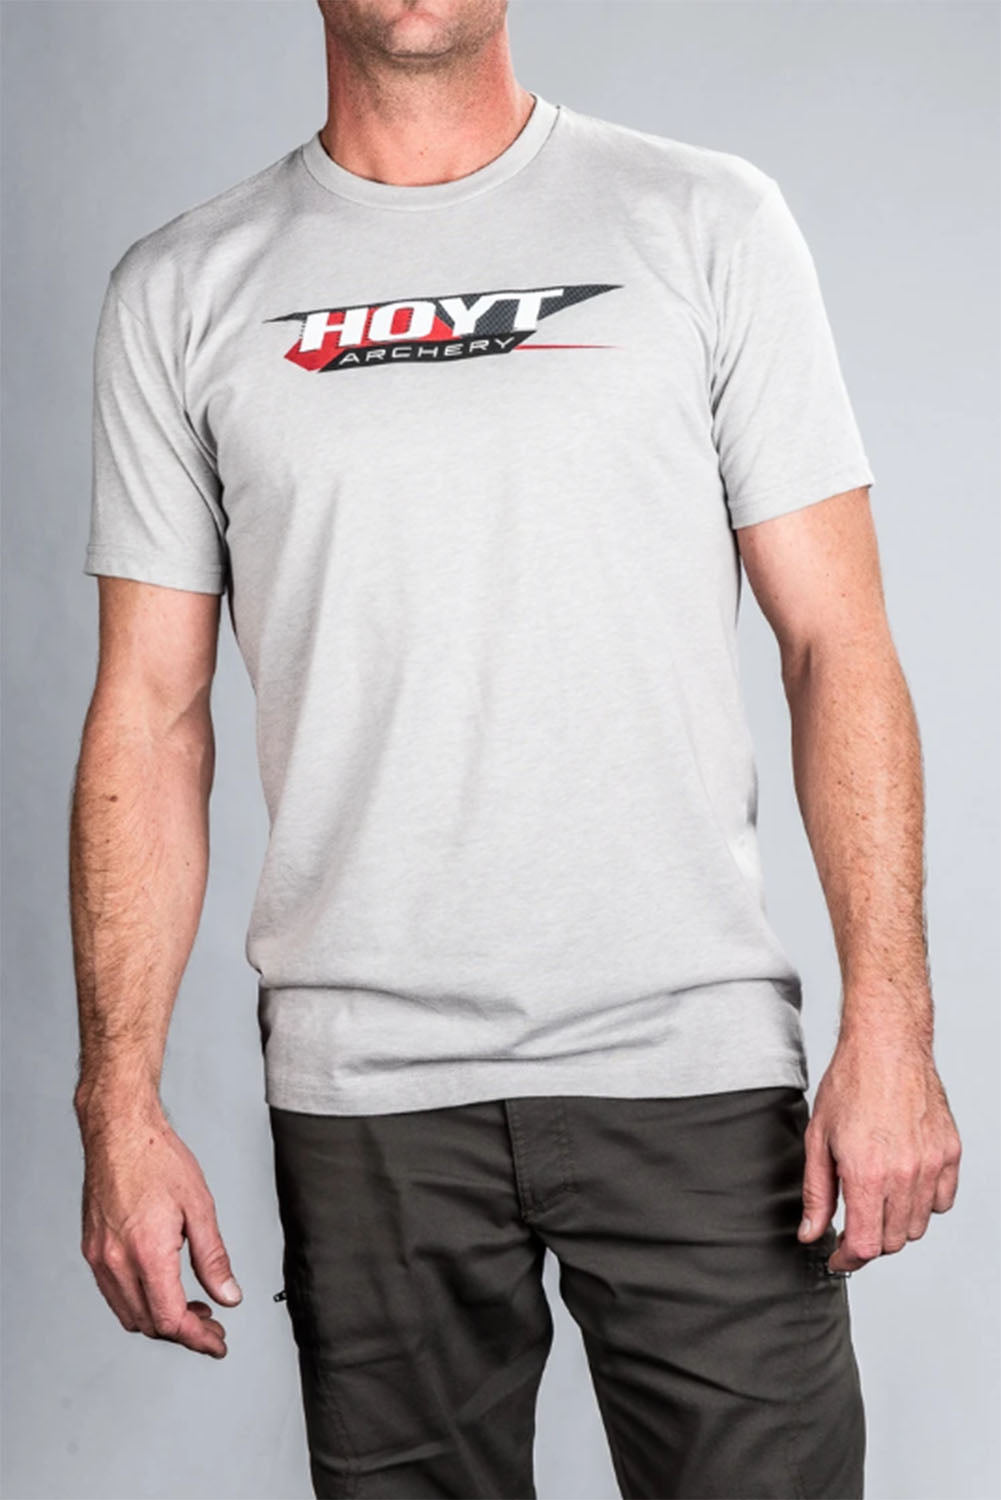 Hoyt Practice Time T-Shirt XX Large